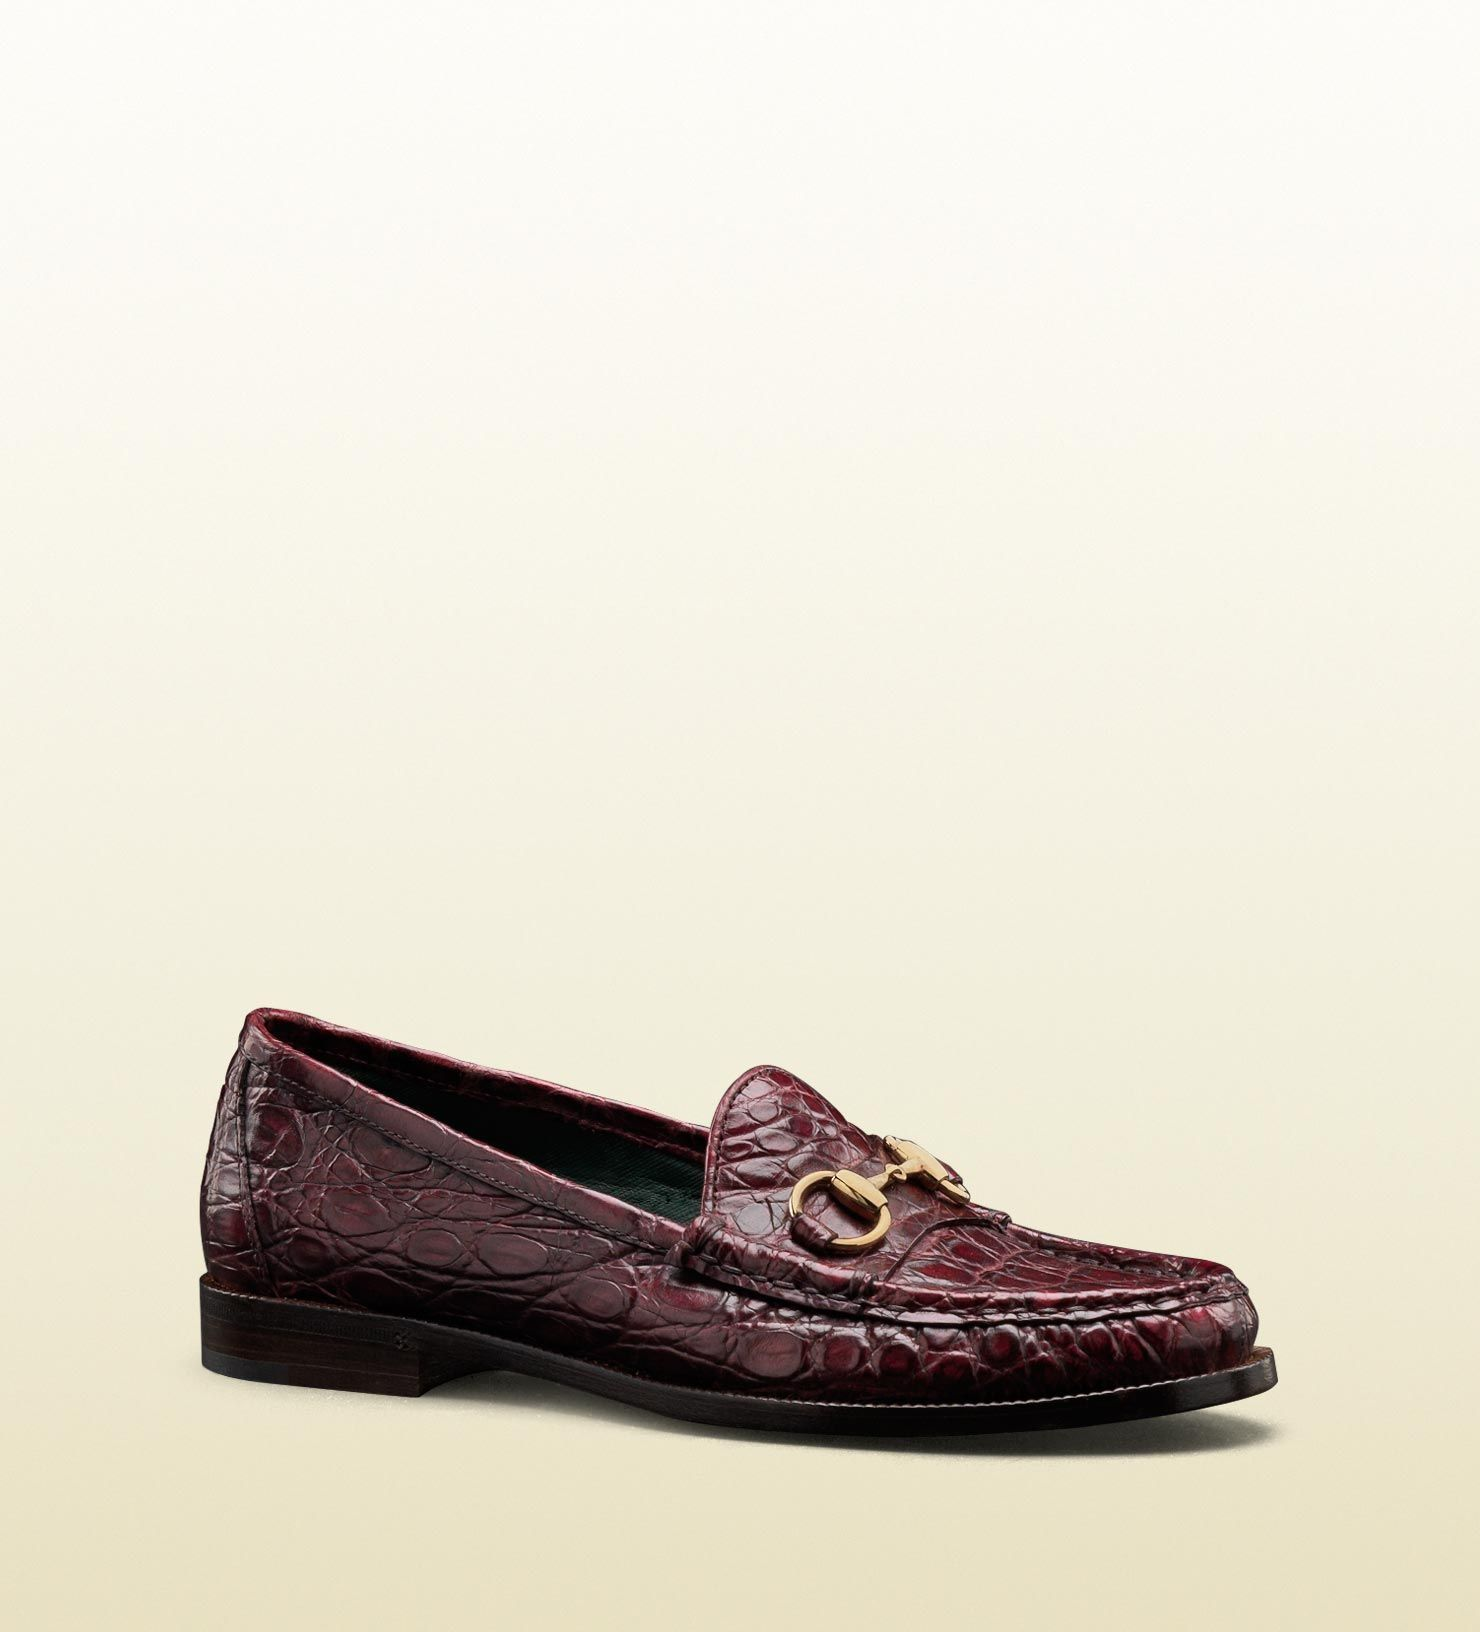 1d02adbf3e1d3 Women s Loafers, Moccasins and Drivers Shoes by Gucci 2018